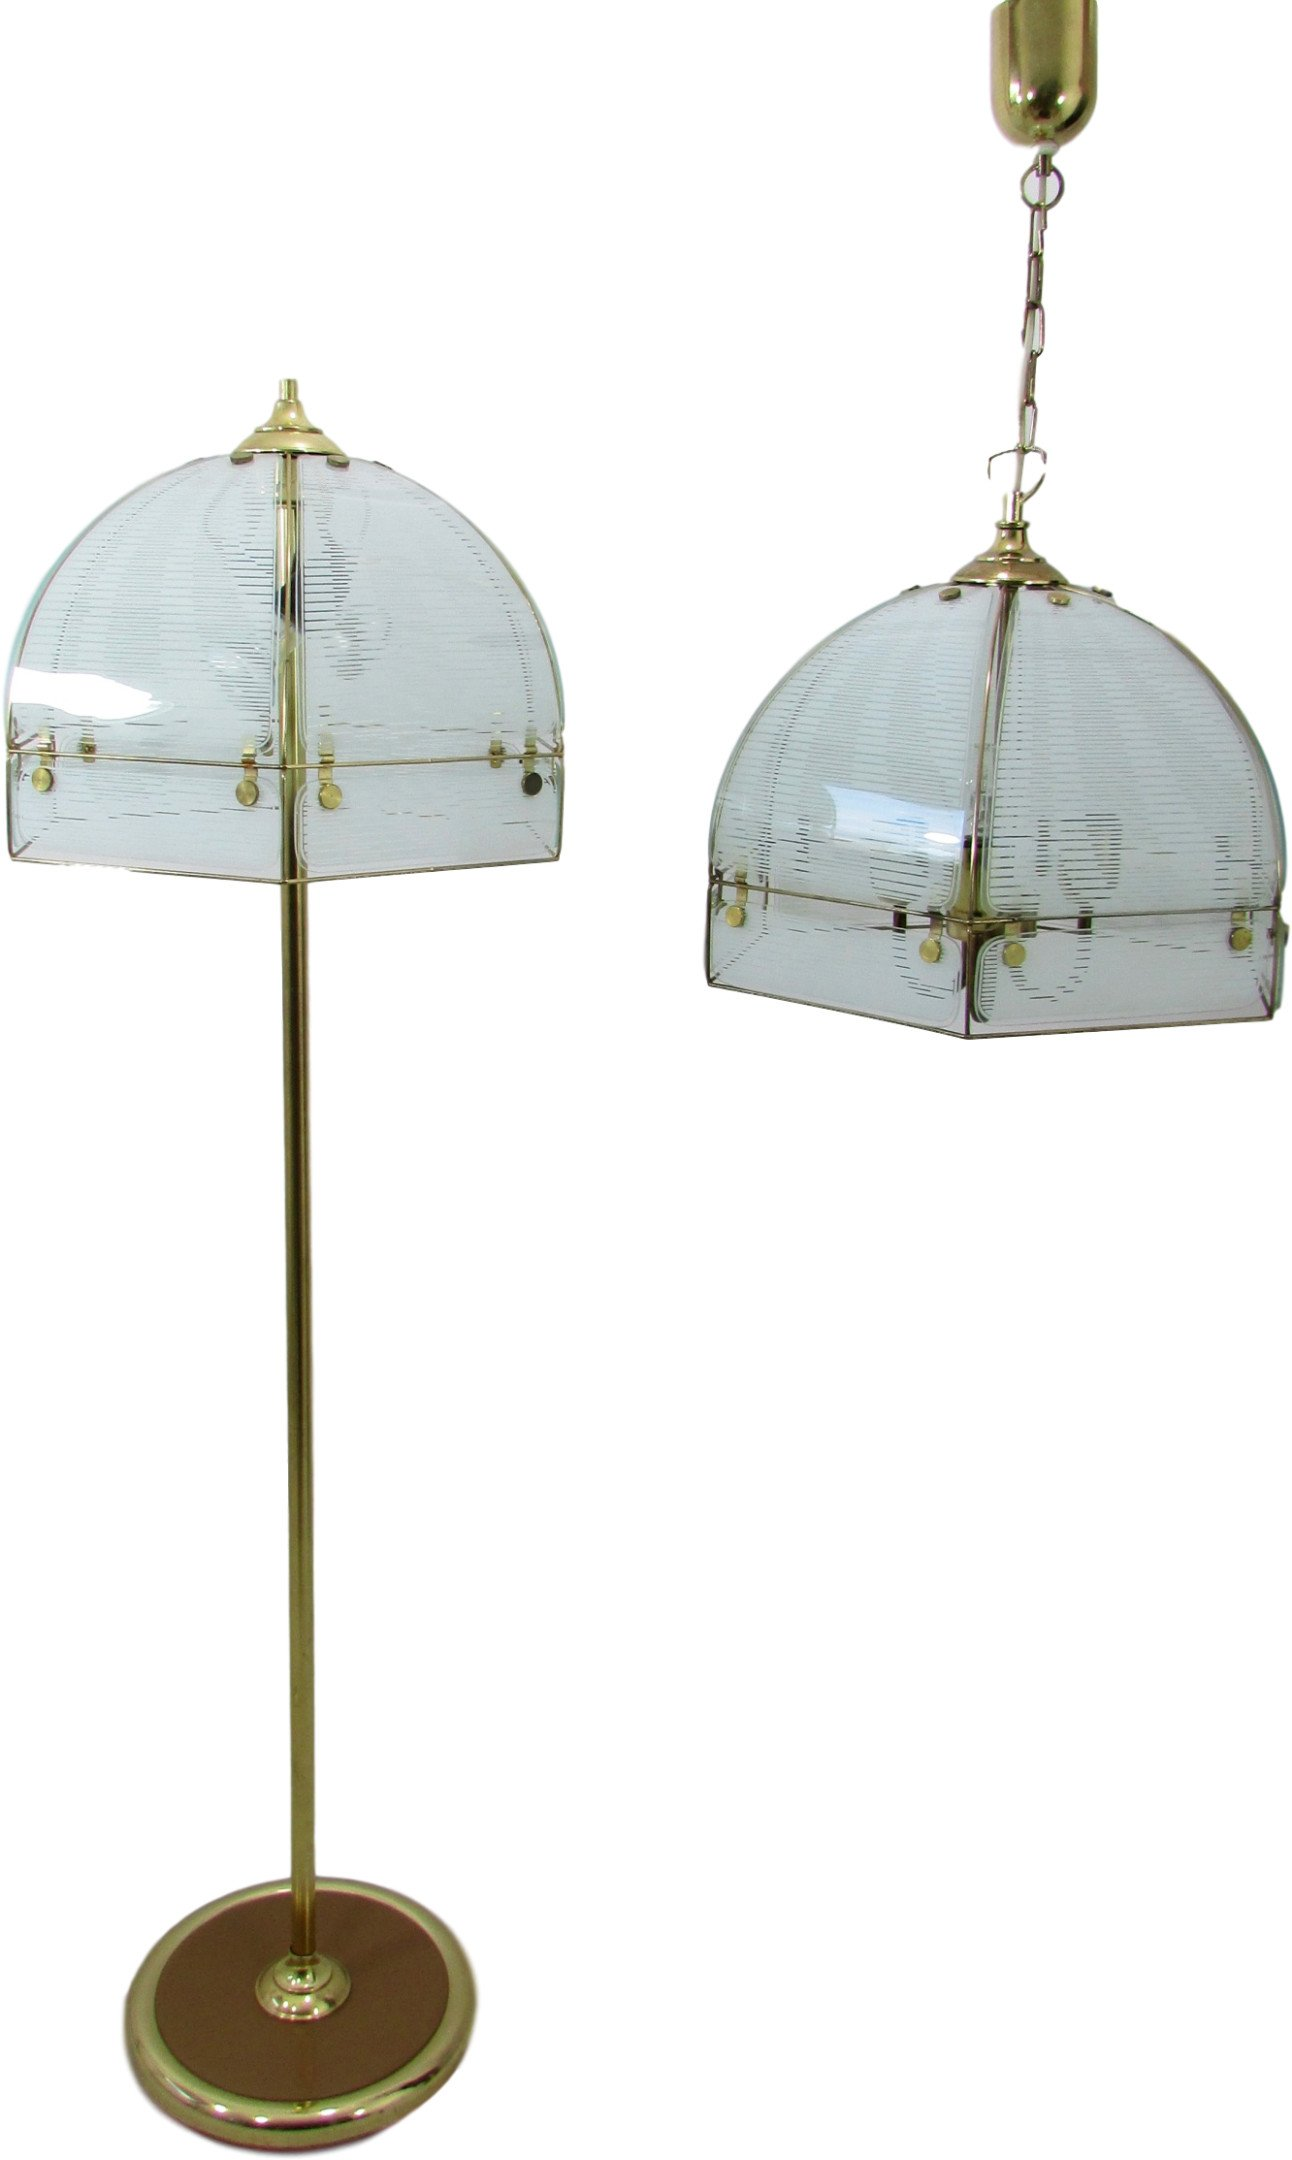 Pair of Lamps, Germany, 1970s